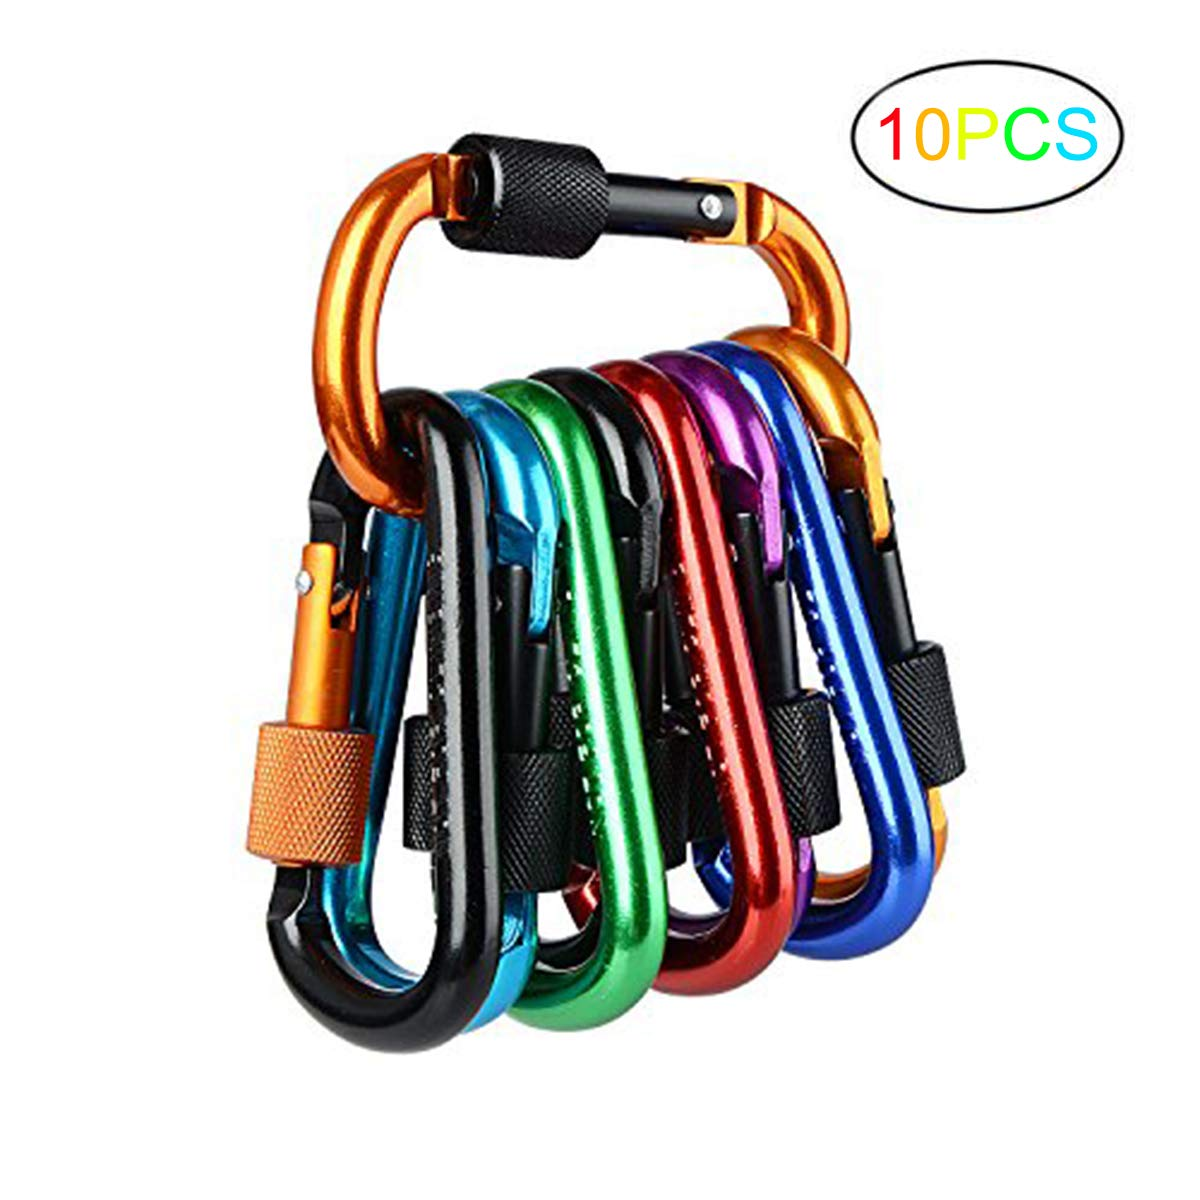 Firlar 10 PCS Locking Carabiner, Premium Aluminum Alloy Carabiner, Spring-loaded D-Ring Key Chain Clip Hook For Camping Hiking Traveling (Not for Climbing)